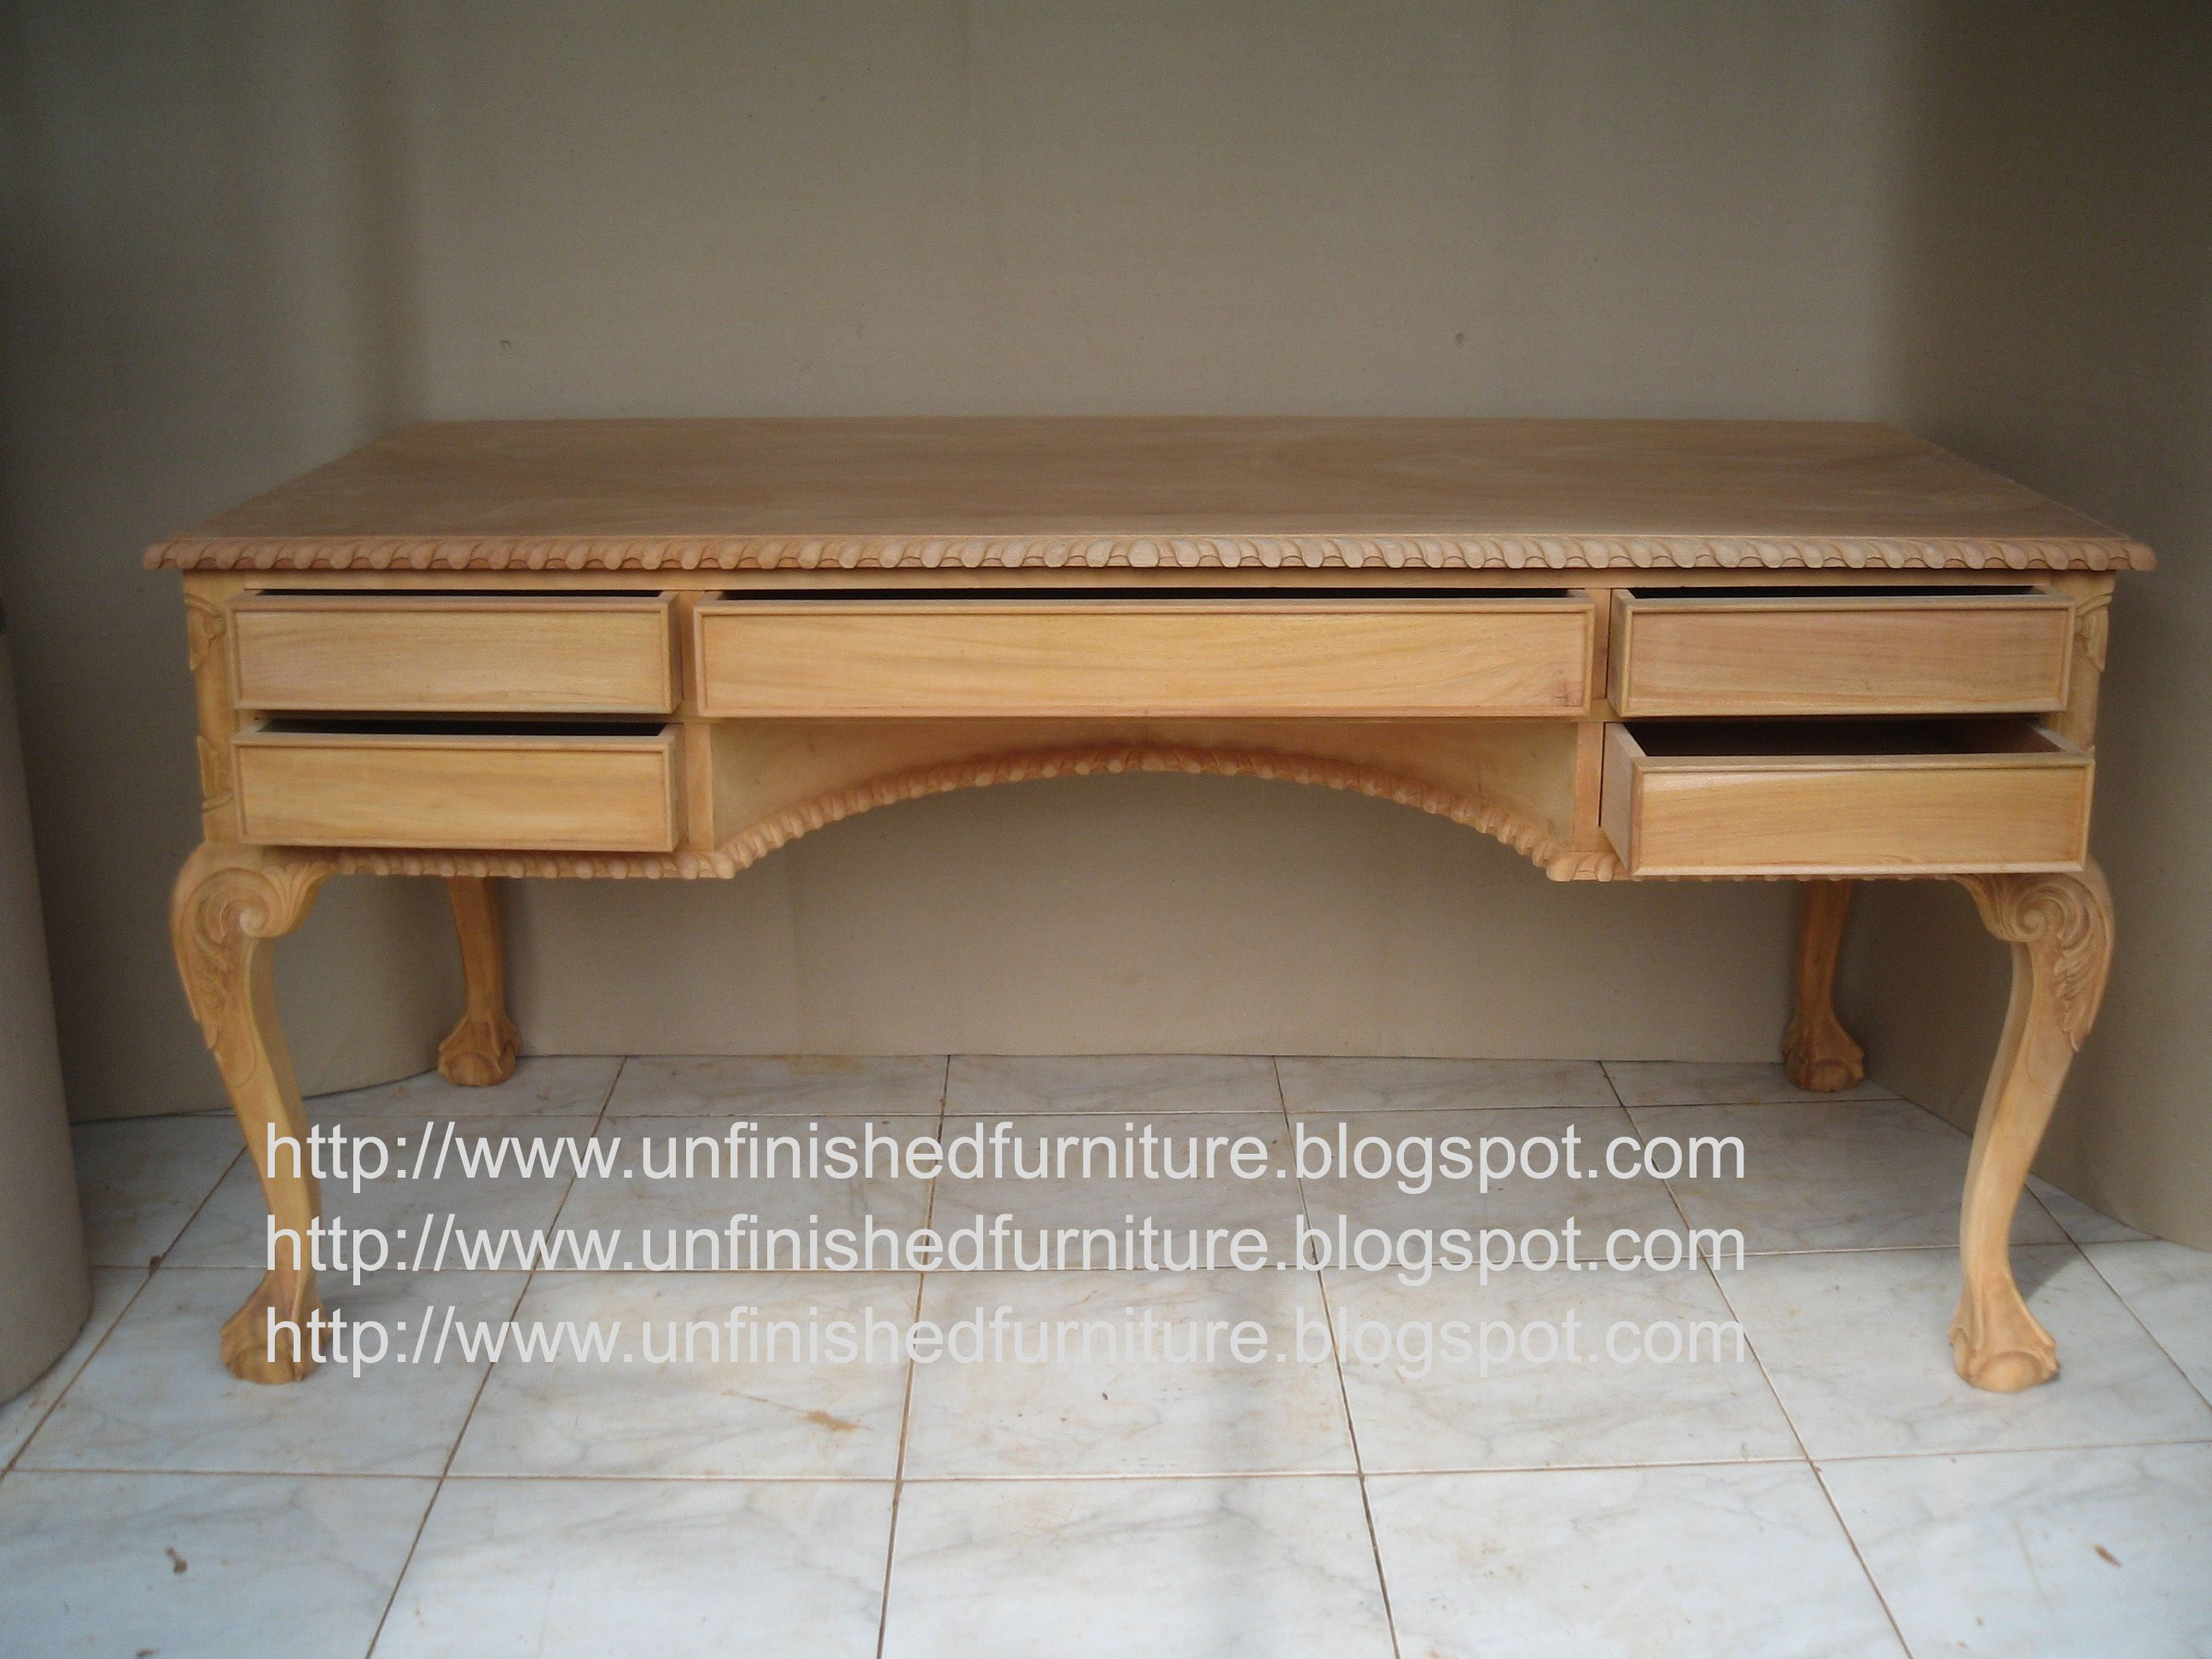 Unfinished Mahogany Furniture Chippendale Writing Table 5 Drawer Made Of Fine Solid Kiln Dry Mahogany Wood Present In Unfinished Furni Italian Style Furniture